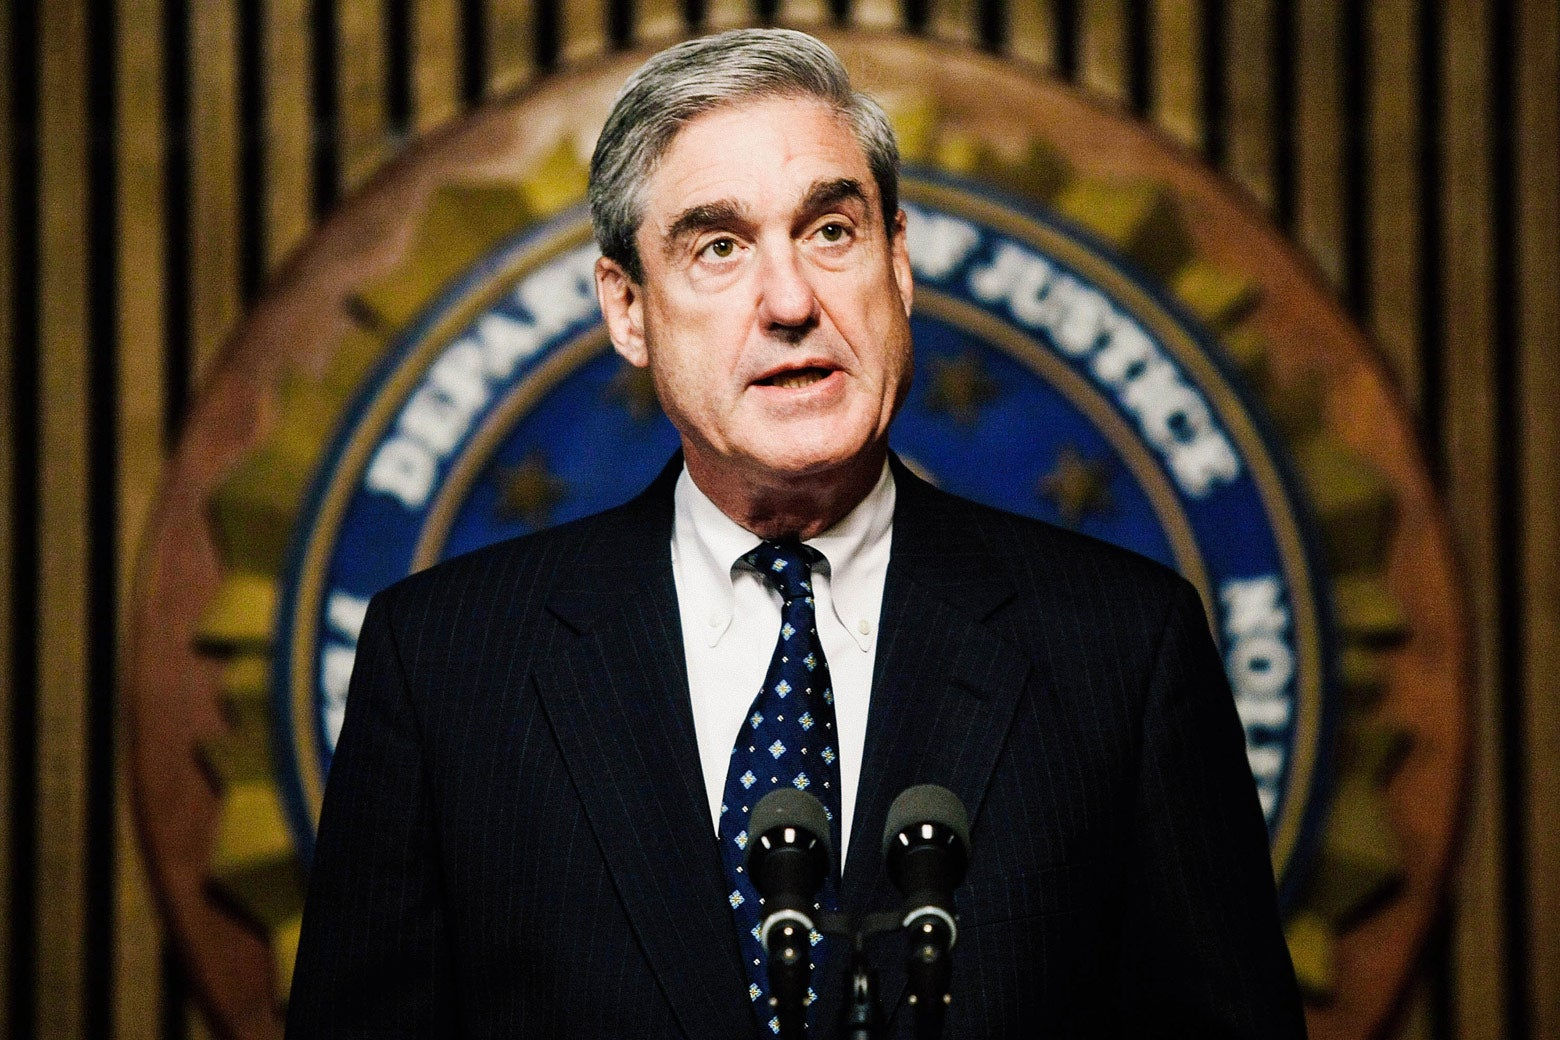 Robert Mueller speaks during a news conference at the FBI headquarters June 25, 2008